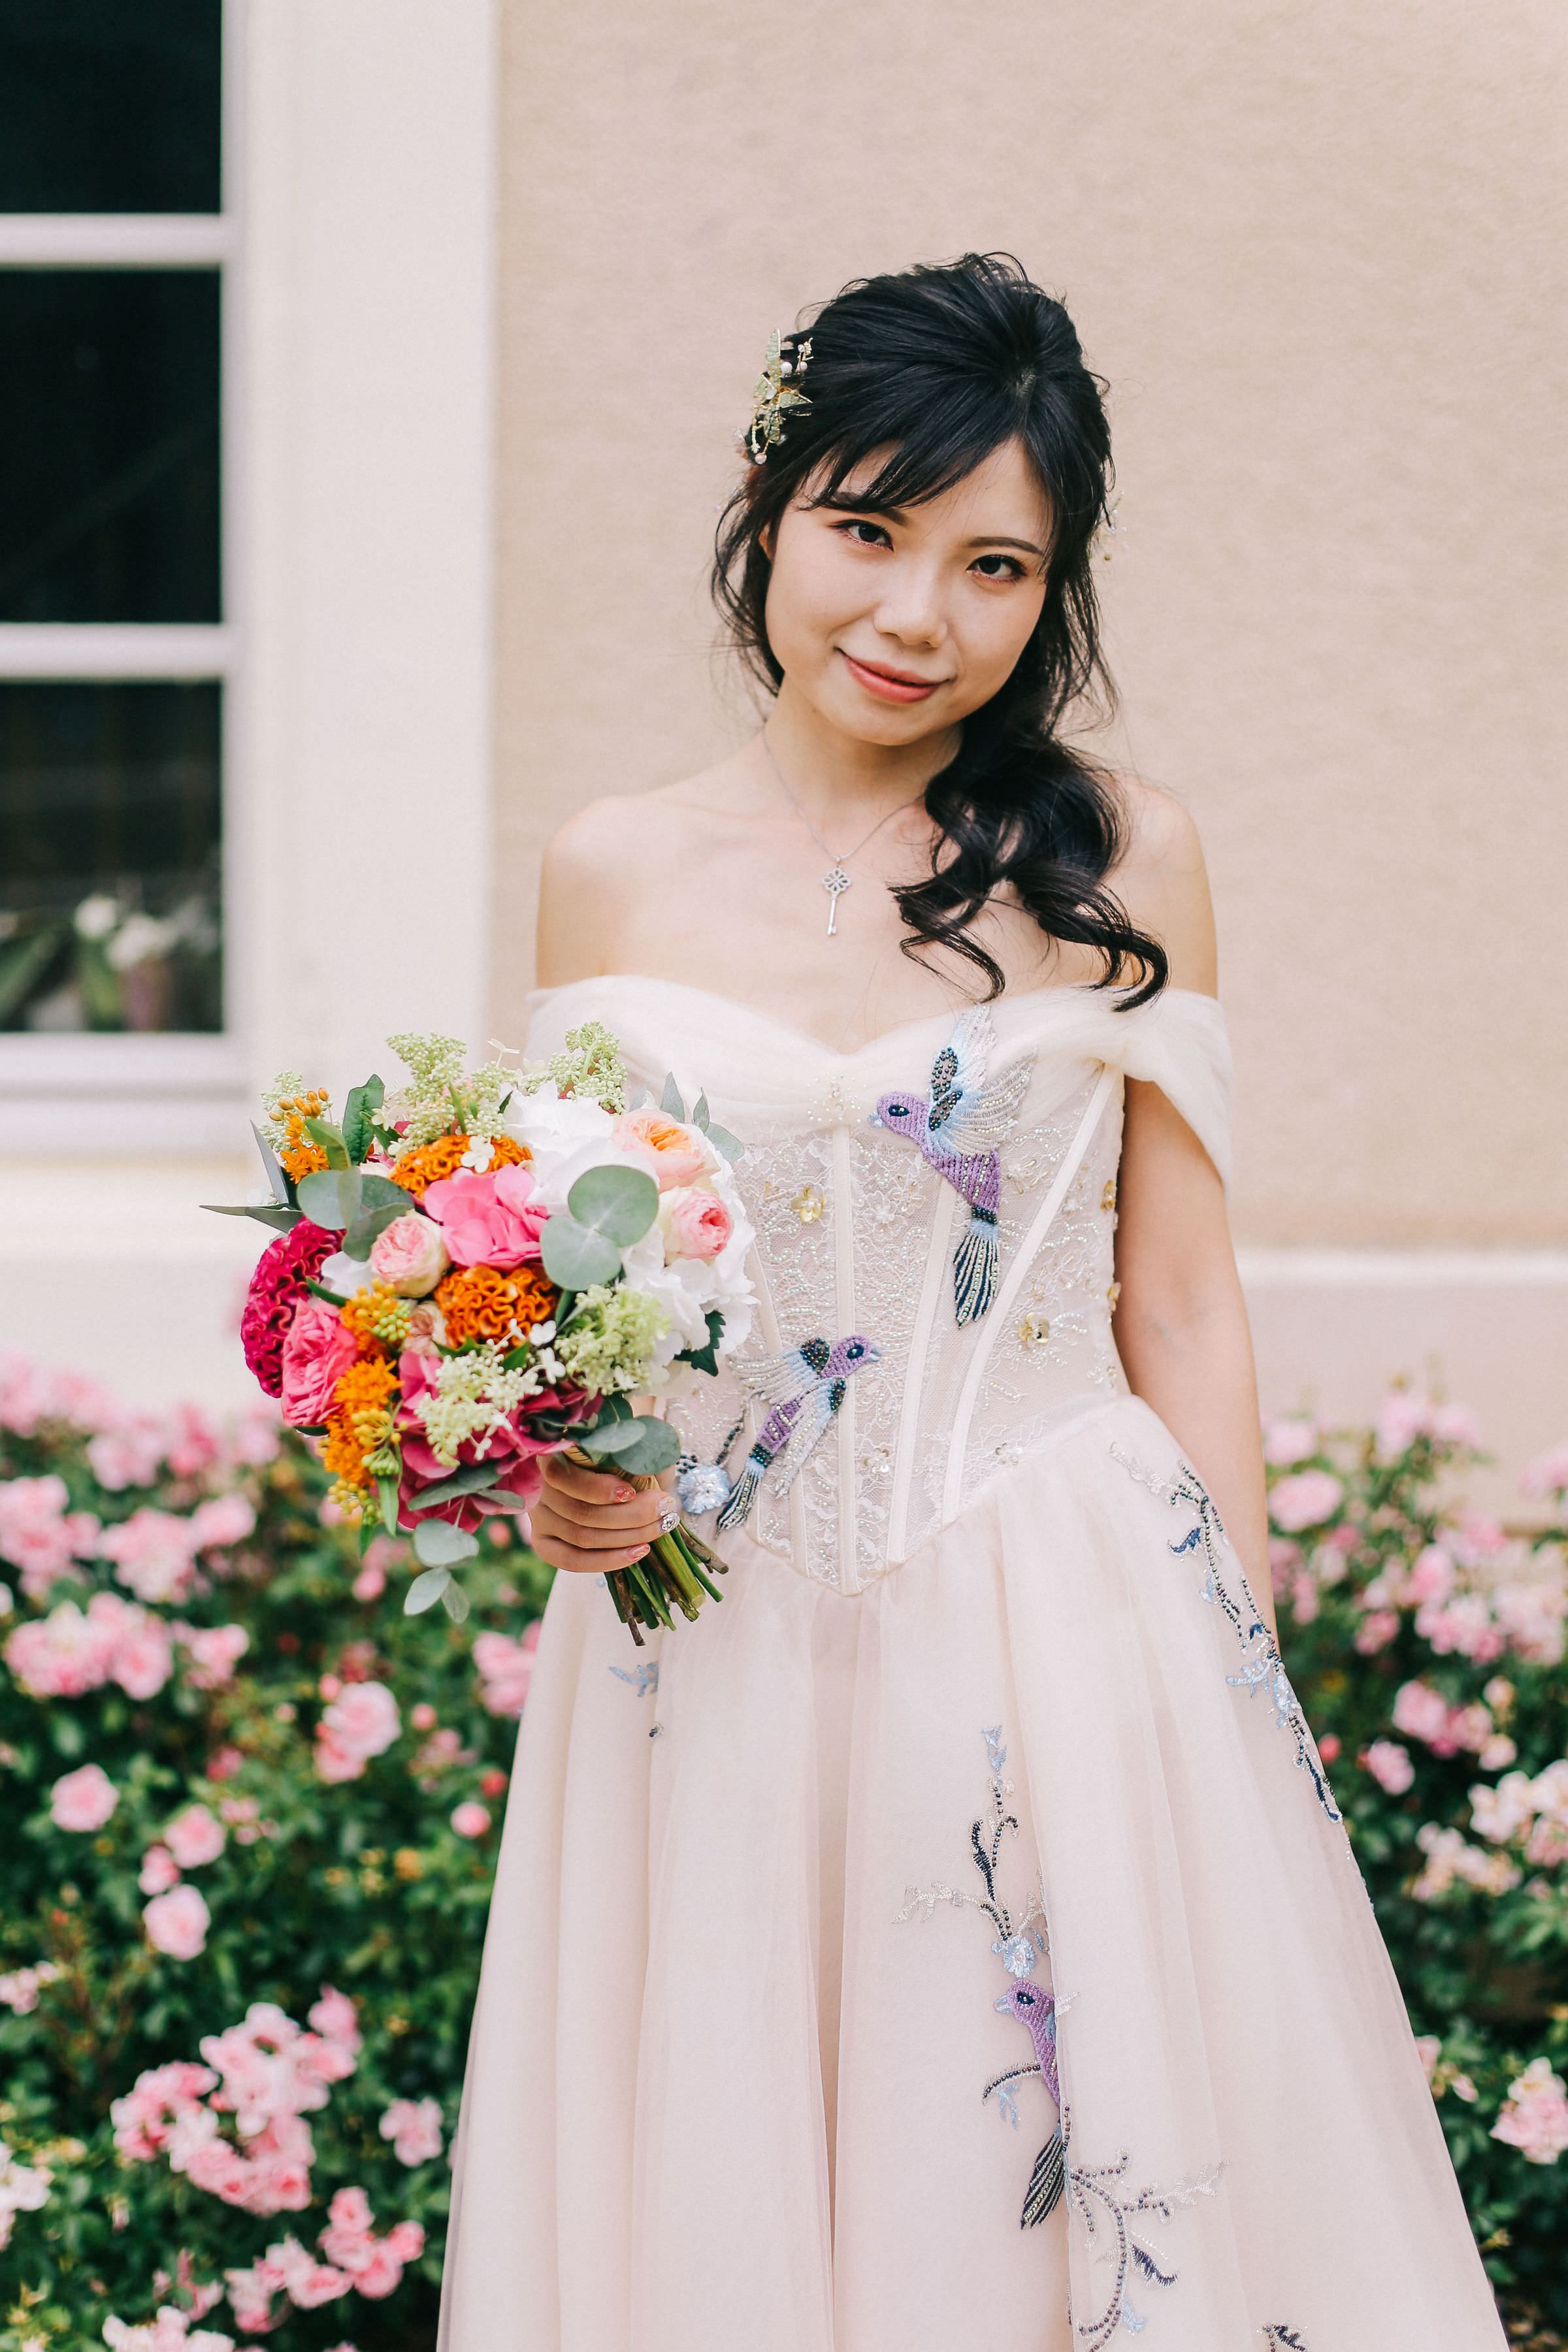 Bride with colorful bouquet - photo by Amandine Ropars